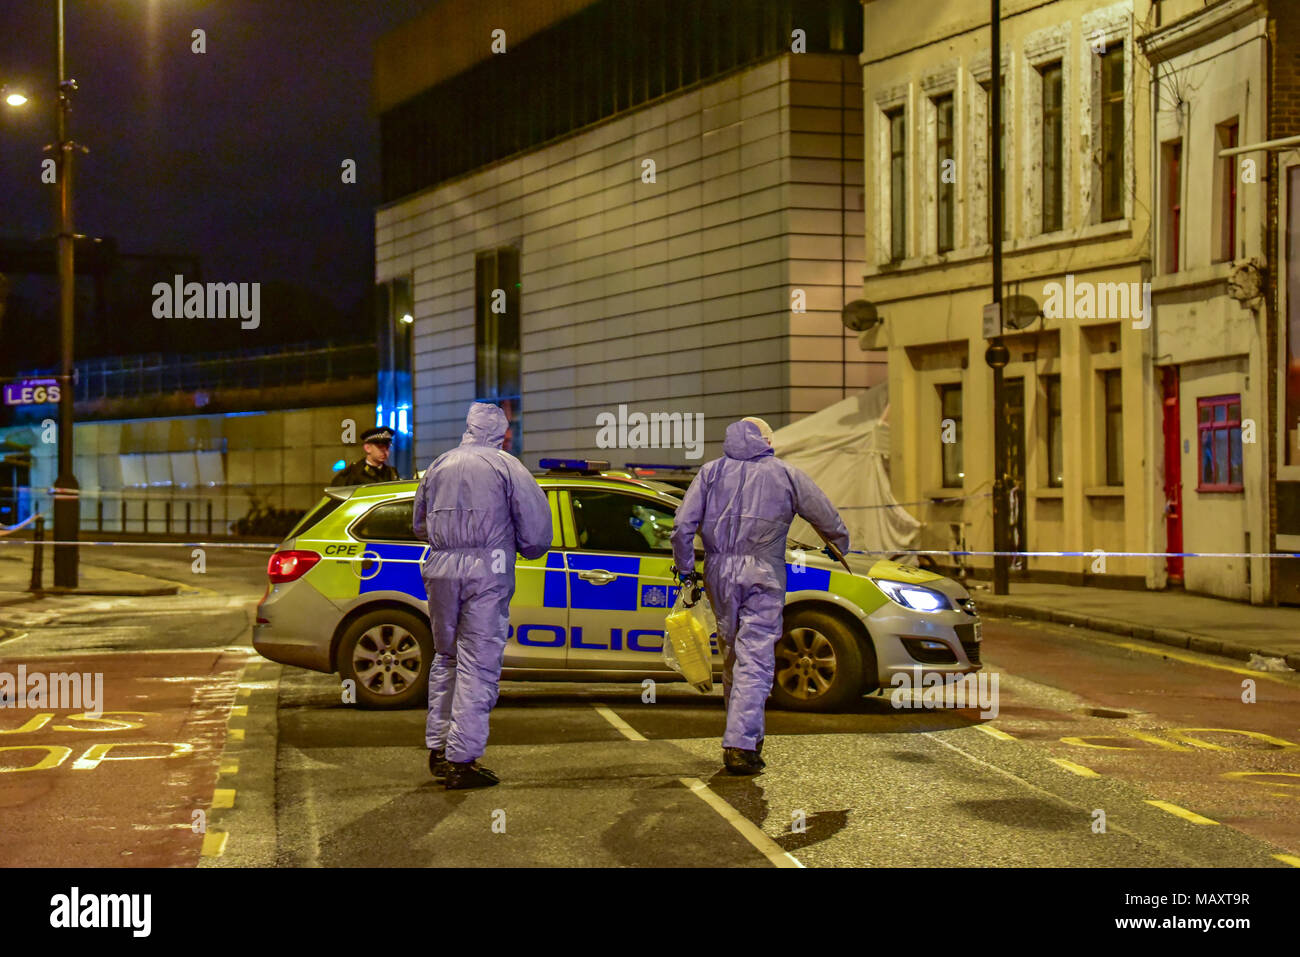 London, United Kingdom. 4 April 2018. A man in his 20's has died after being stabbed in the London suburb of Hackney.  Credit: Peter Manning/Alamy Live News - Stock Image